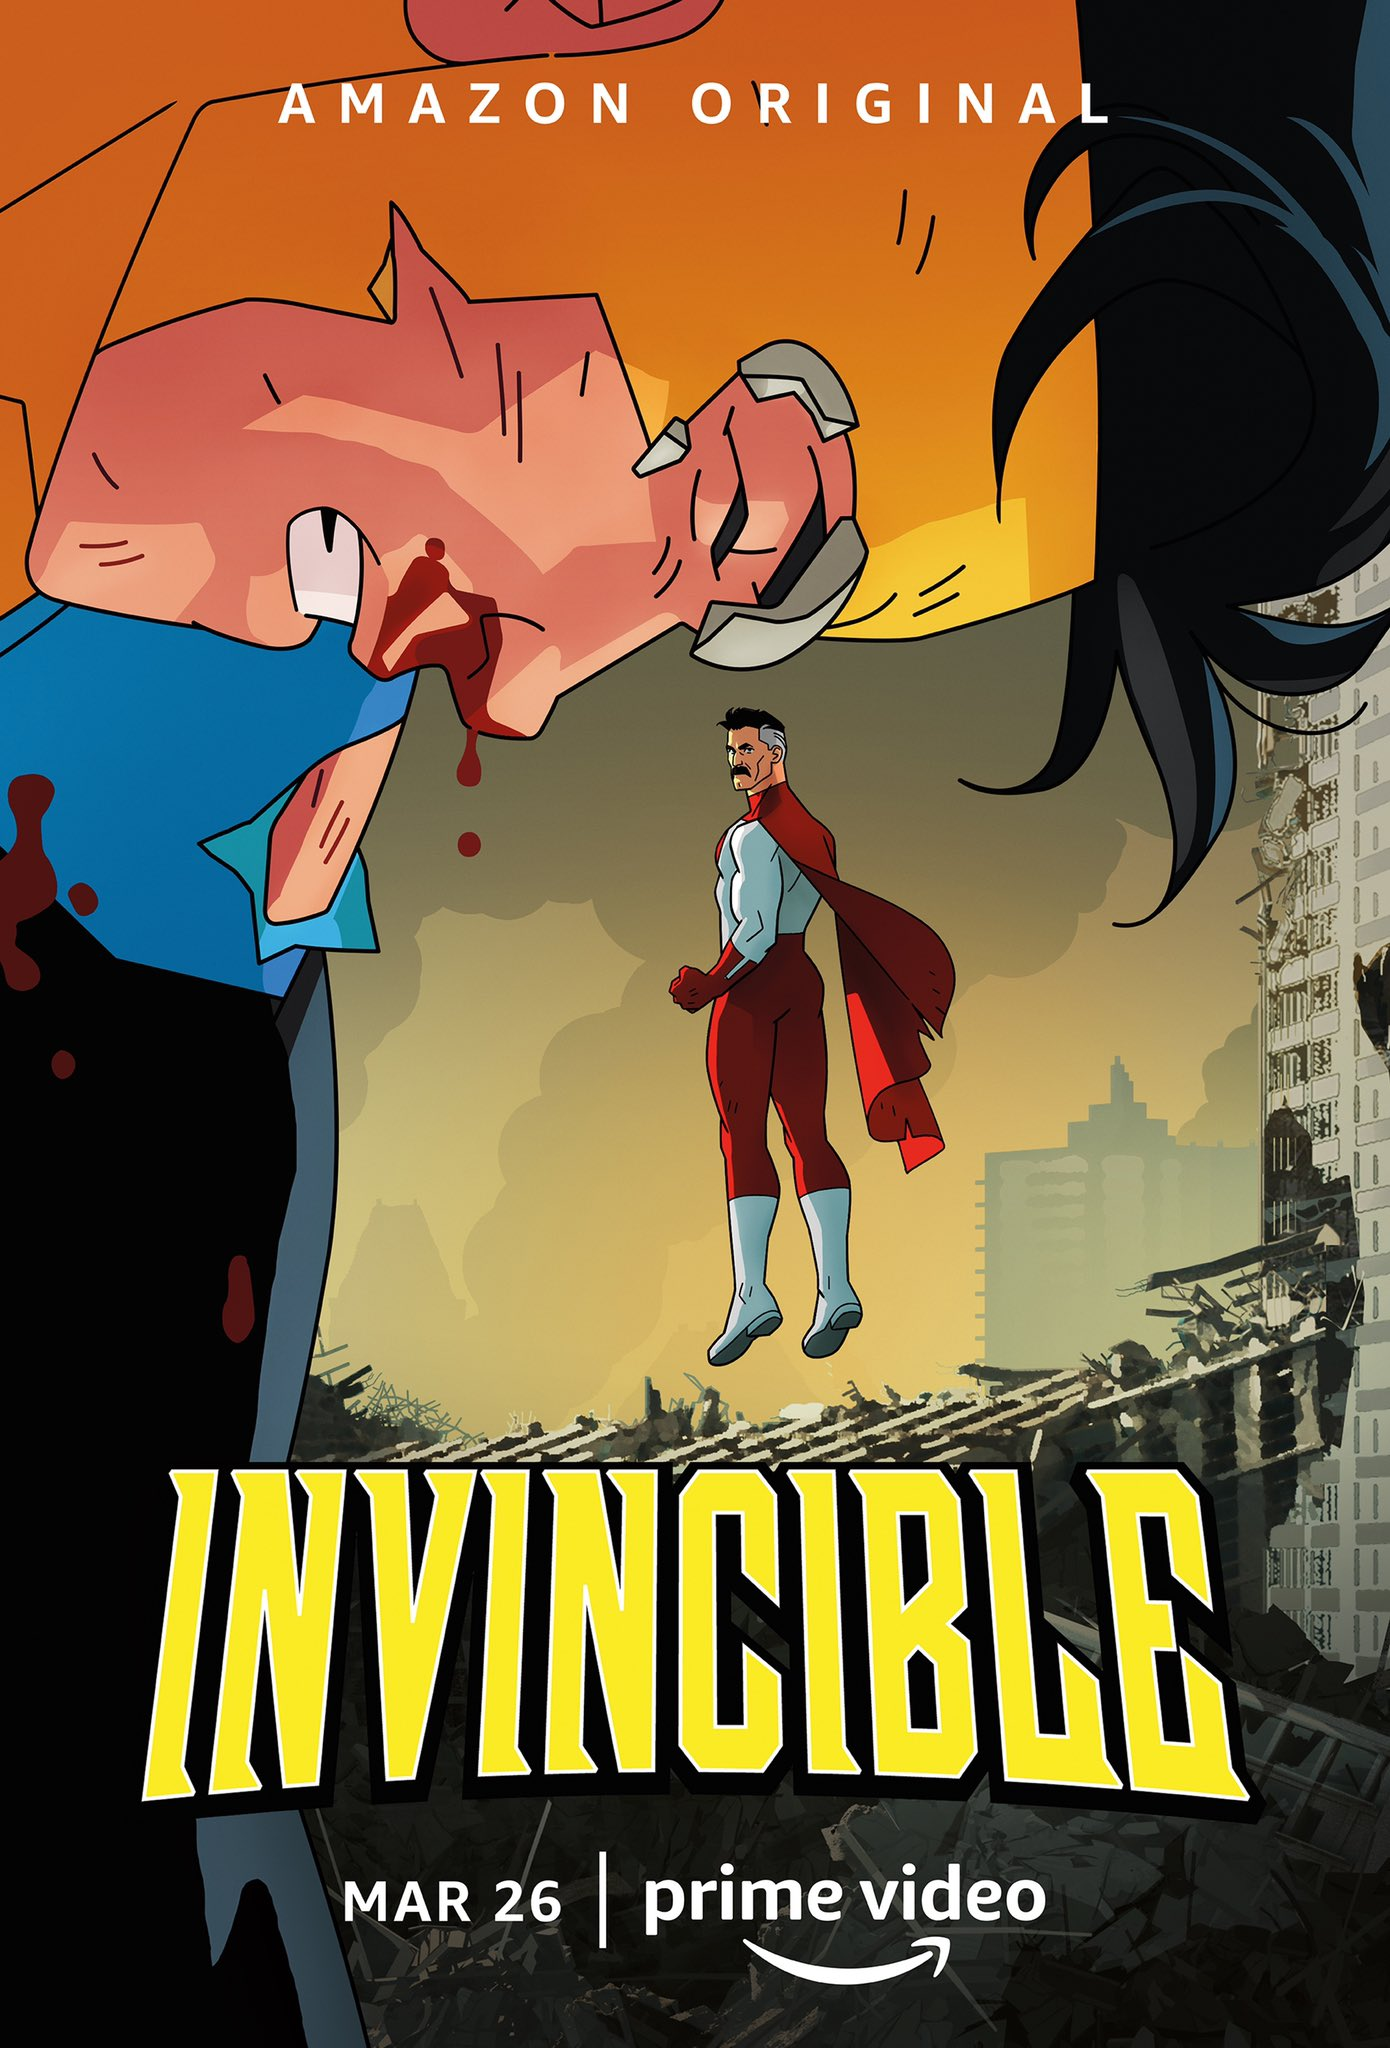 The official Invincible poster, featuring Mark and Nolan Grayson. Invincible appears to be kneeling with some blood on his face / mouth, and a ruined city around them